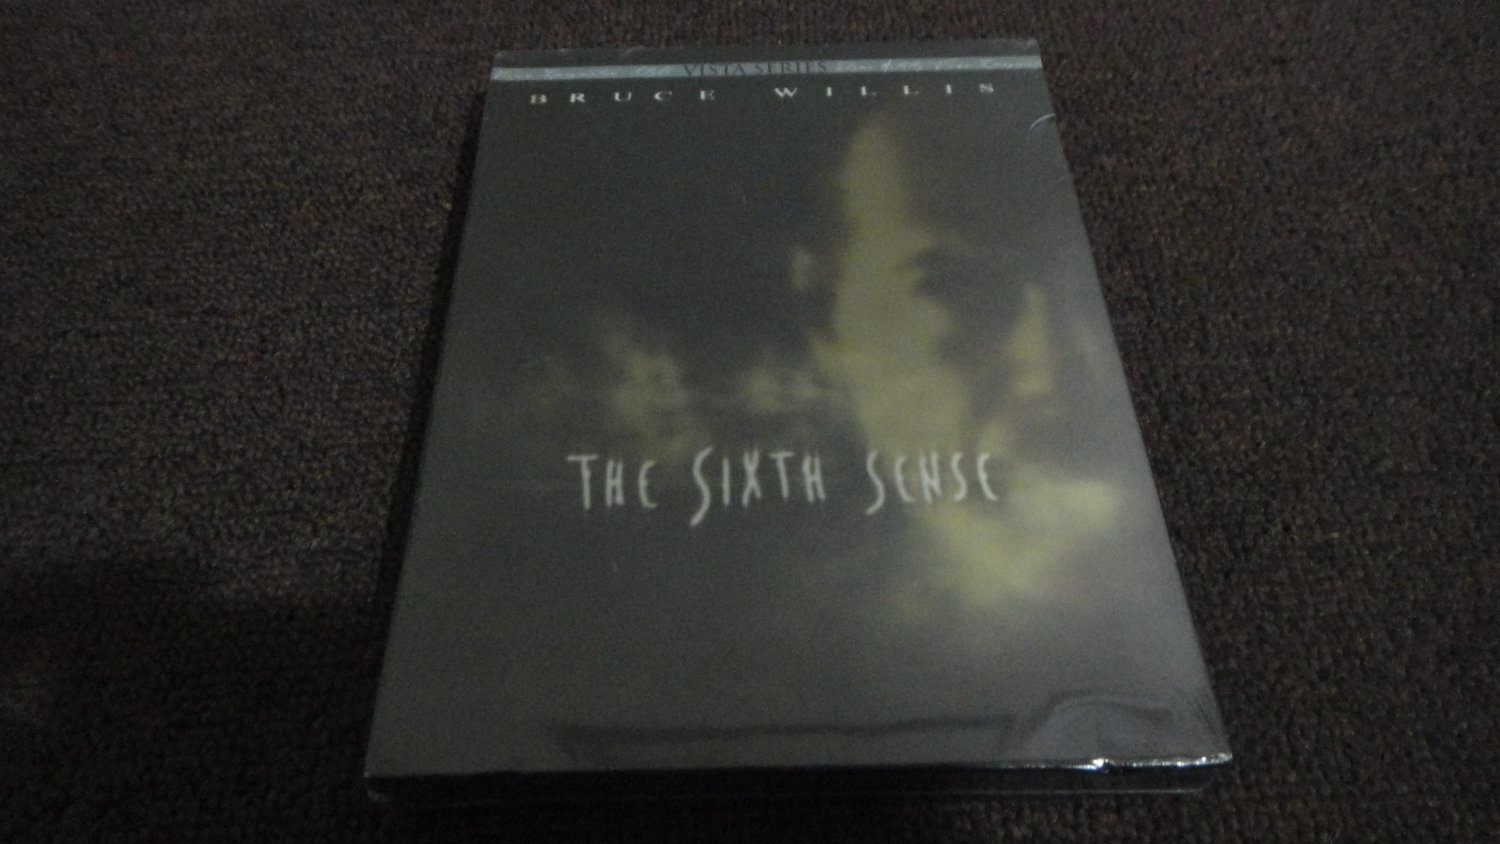 THE SIXTH SENSE - Bruce Willis, VISTA Series Edition, NEW SEALED. LOOK!!!